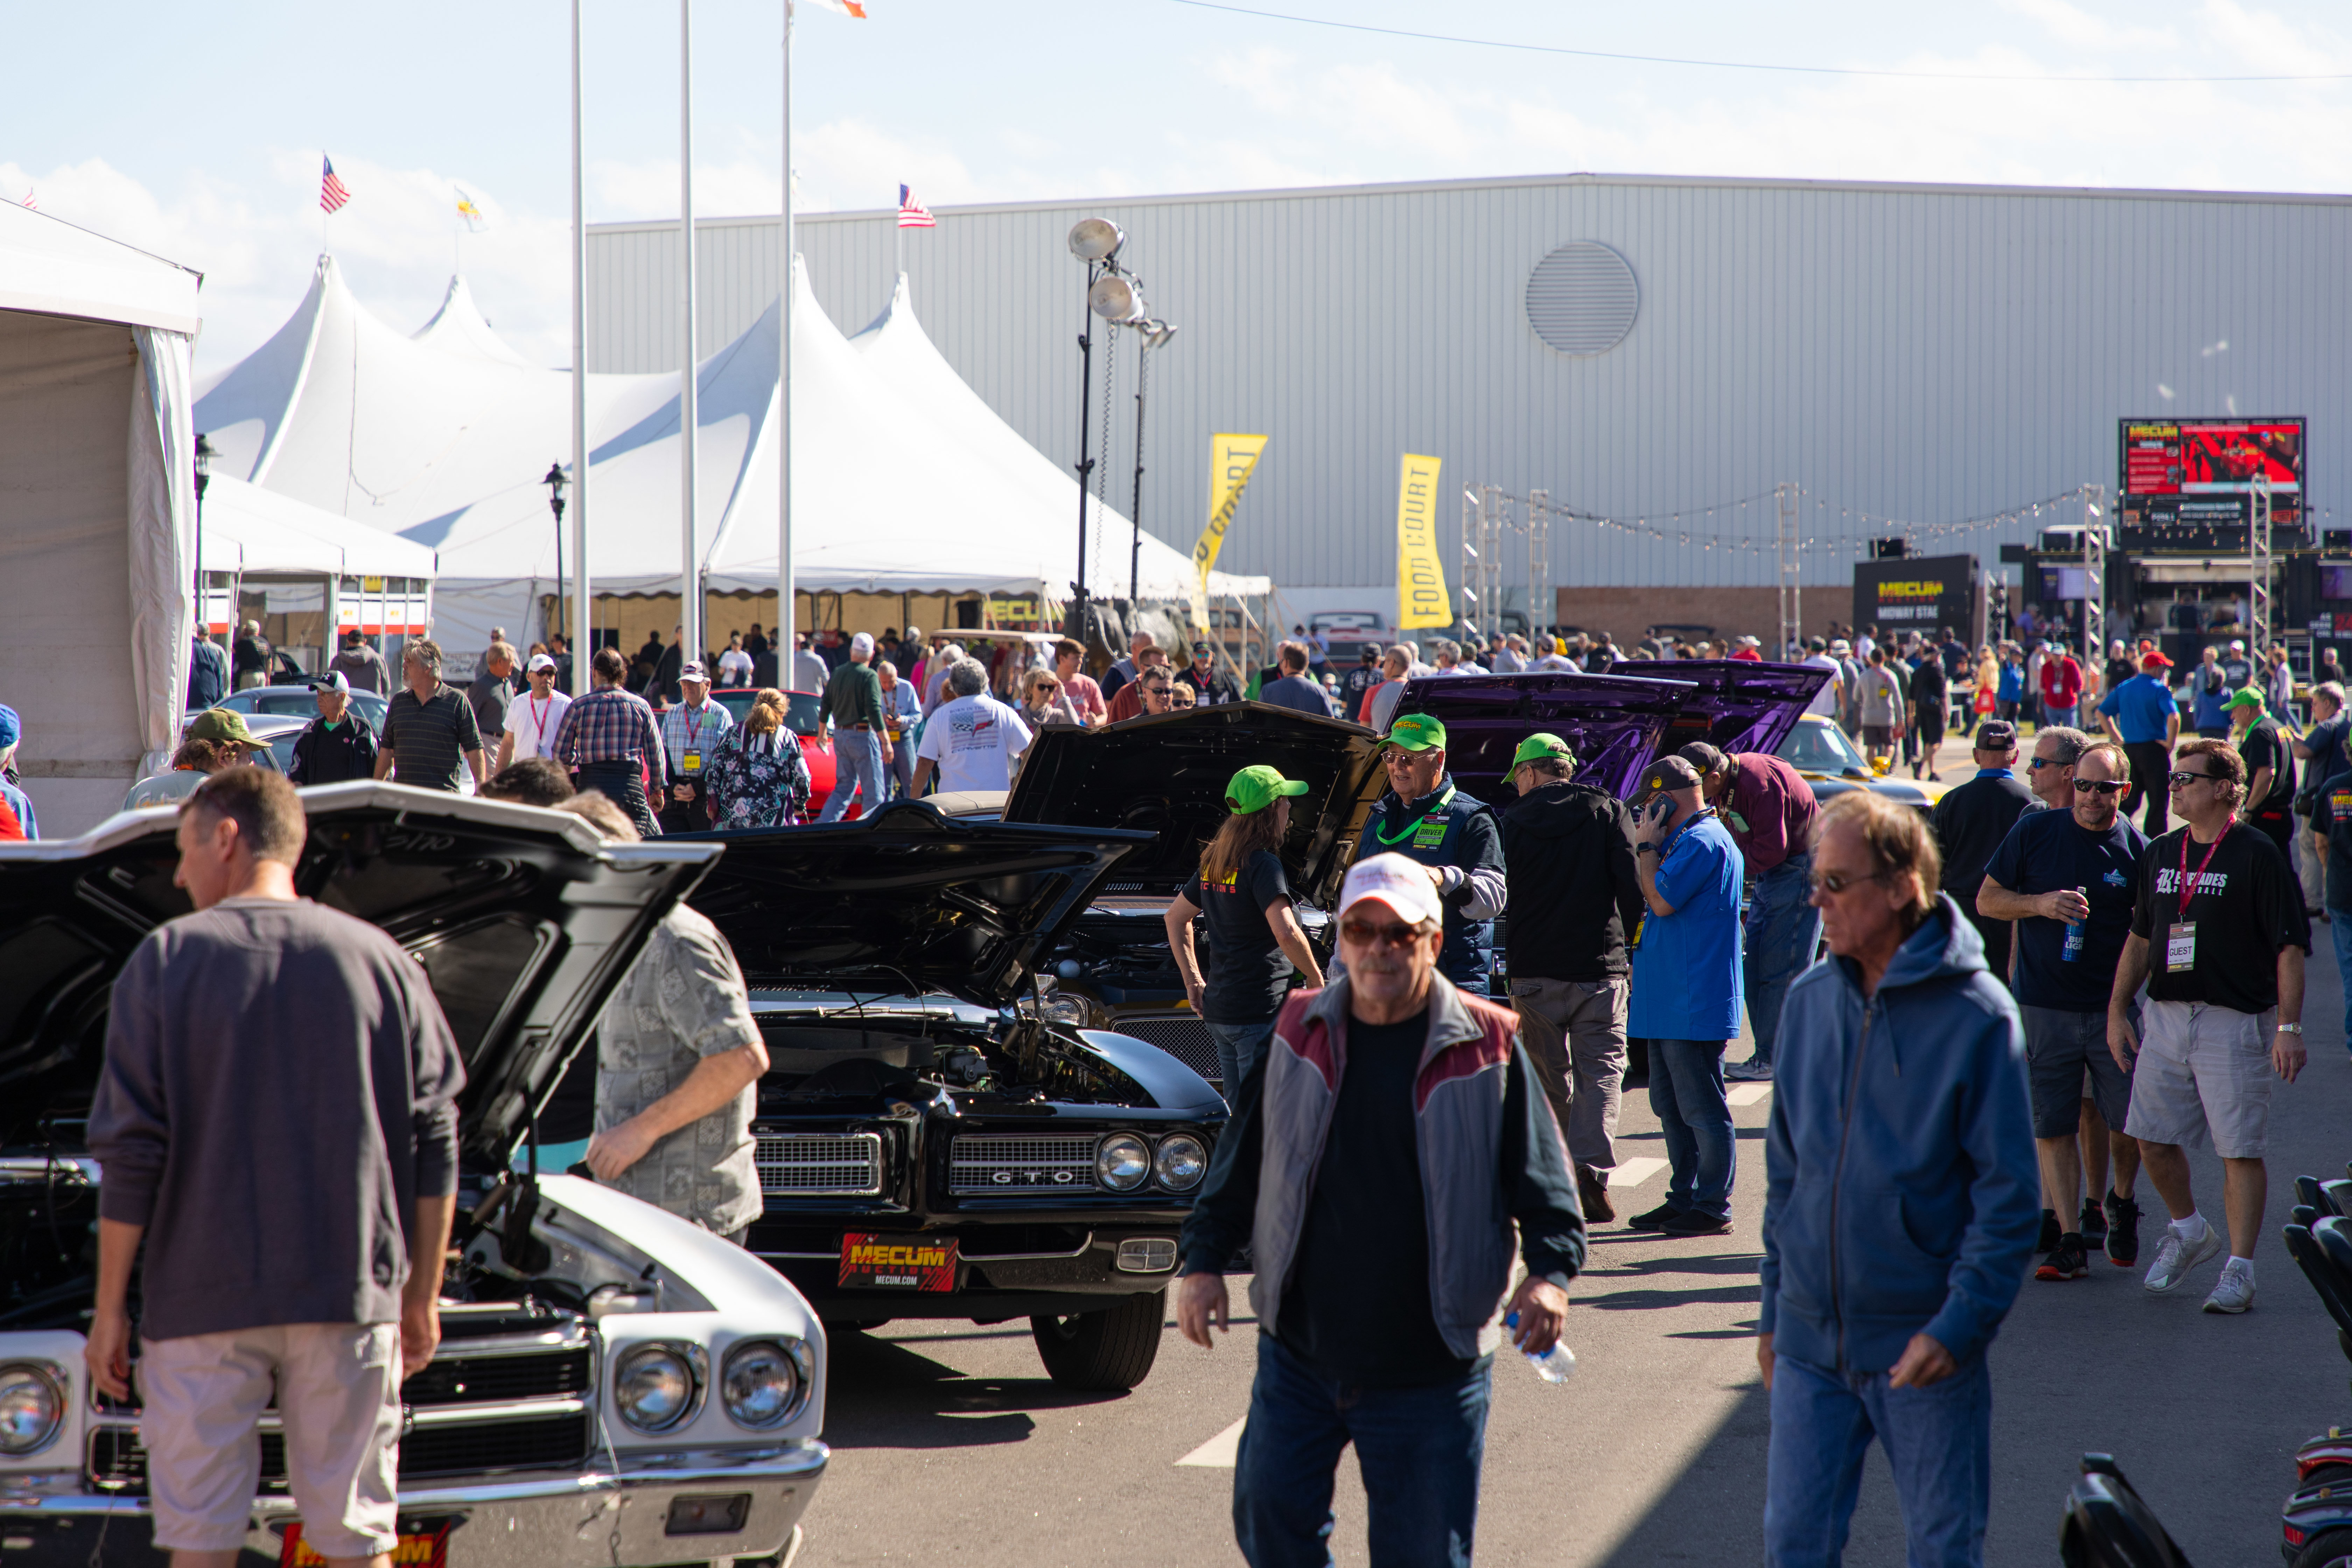 Mecum Kissimmee 2019 The Largest Collector-Car Auction in the World - Mecum Auctions [2]